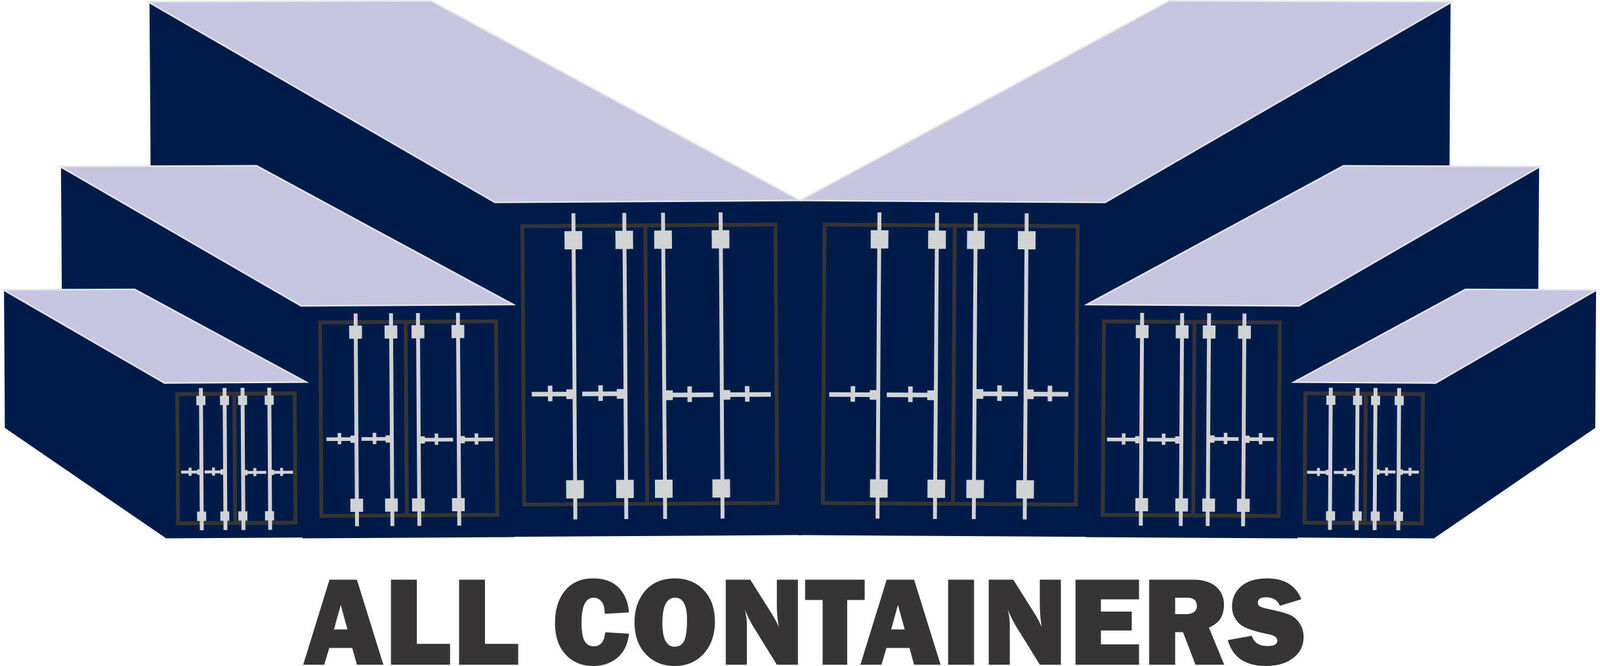 All Containers